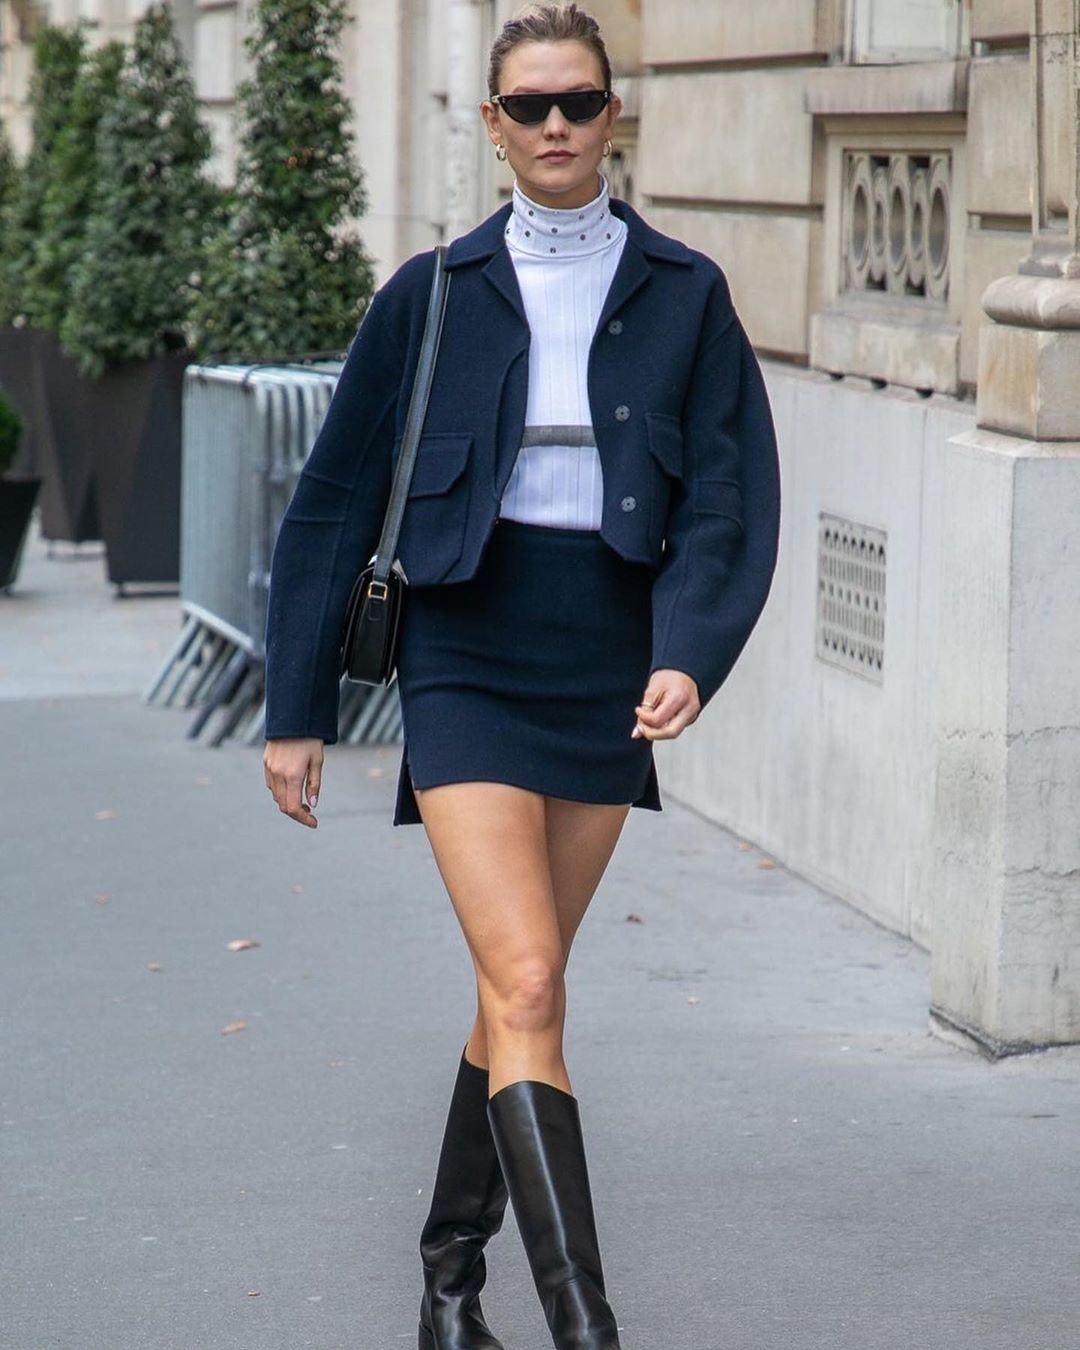 How to Style a Short Skirt in the Winter